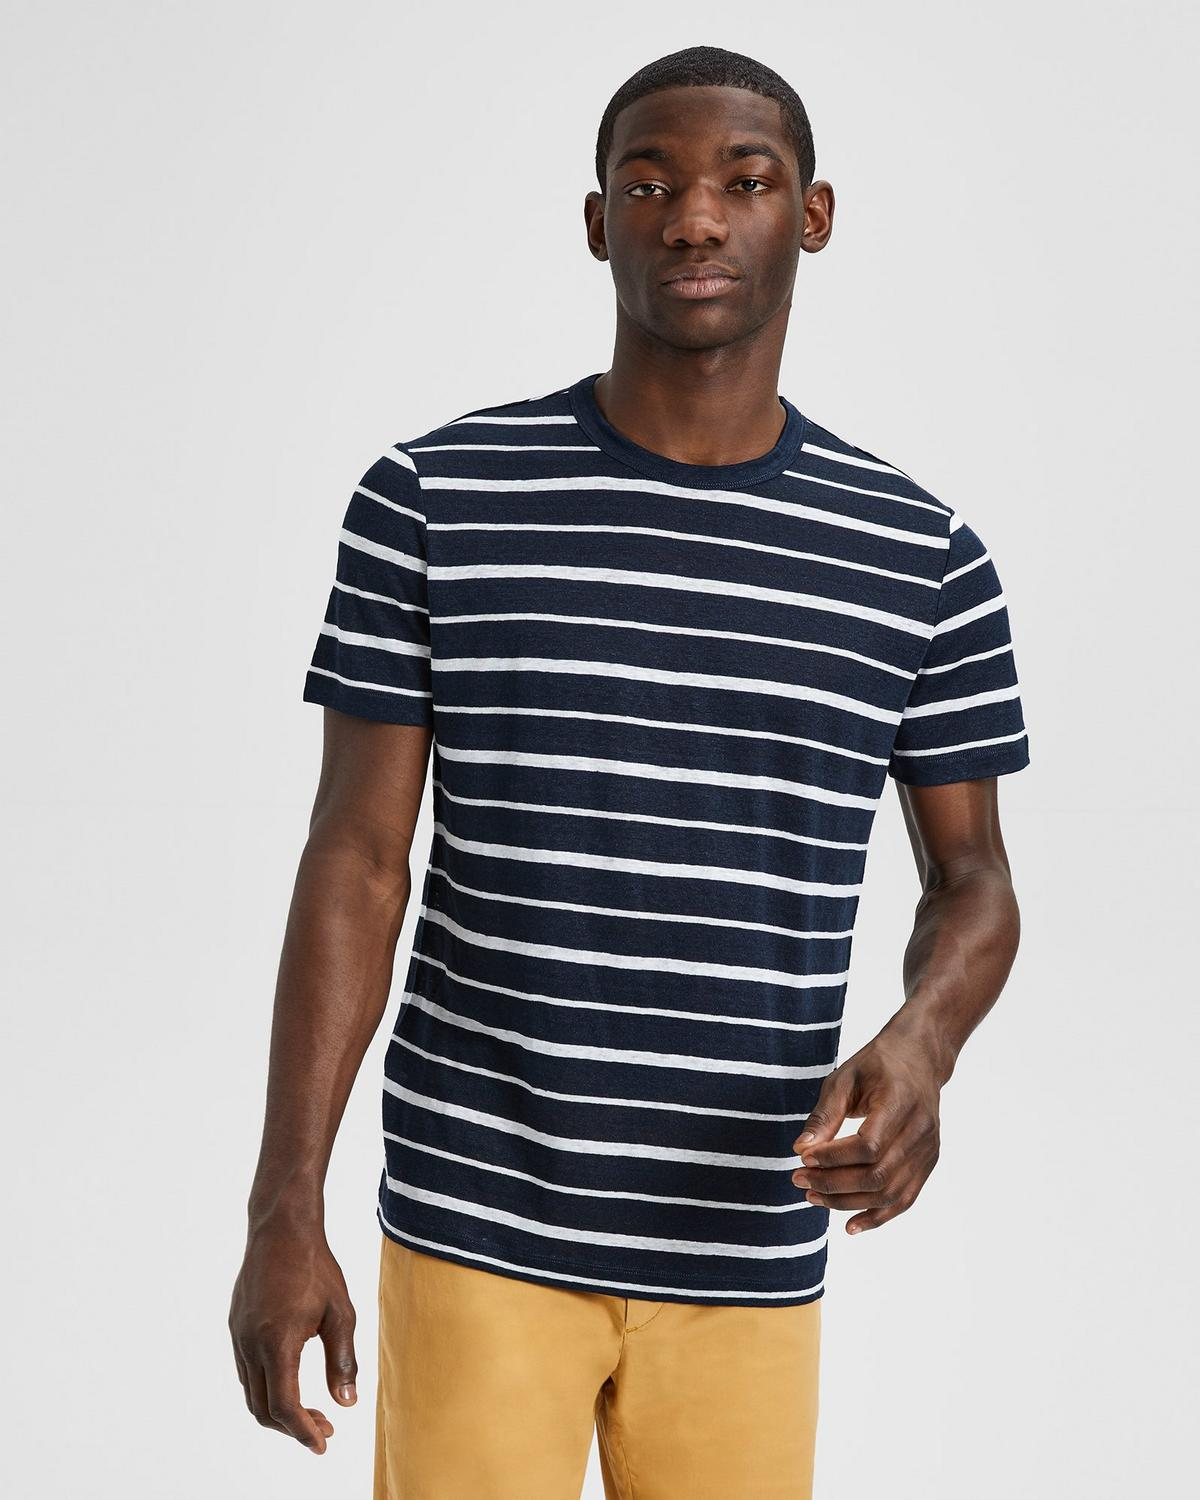 Essential Tee in Striped Linen